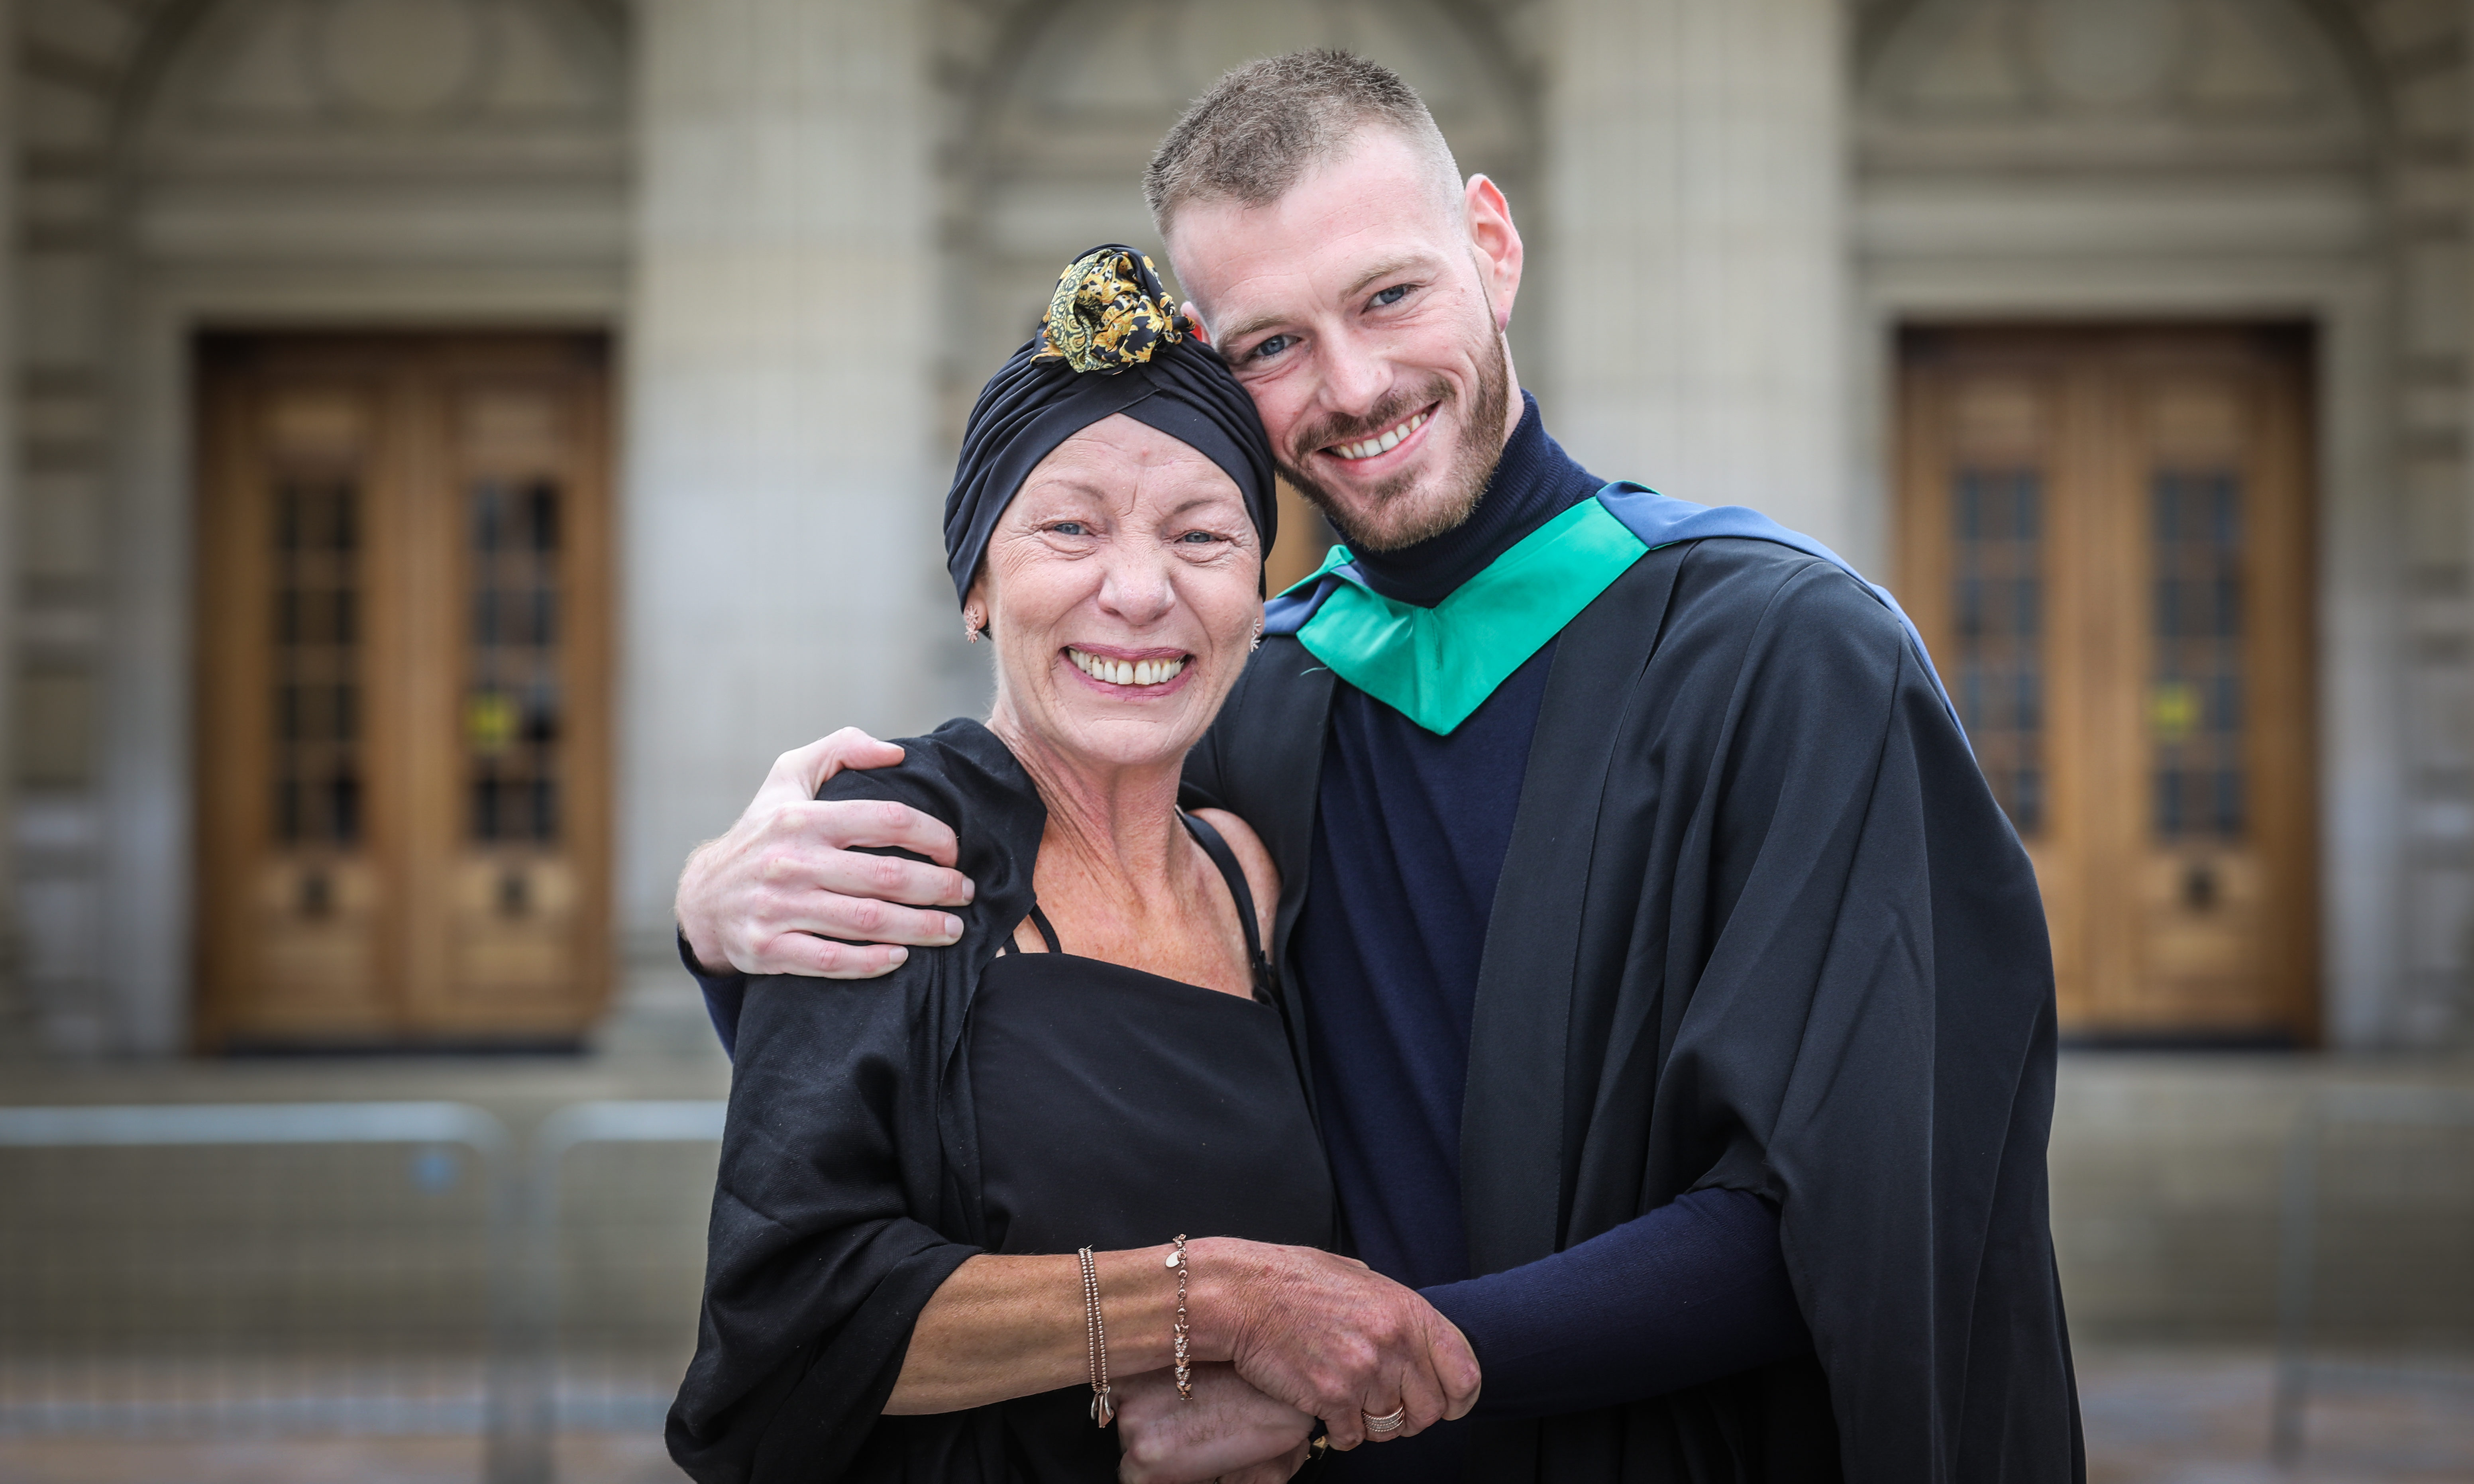 Matilda Latronico who is suffering from cancer, with son Sam Latronico, 27, from Perth who graduates in Ethnical Hacking.